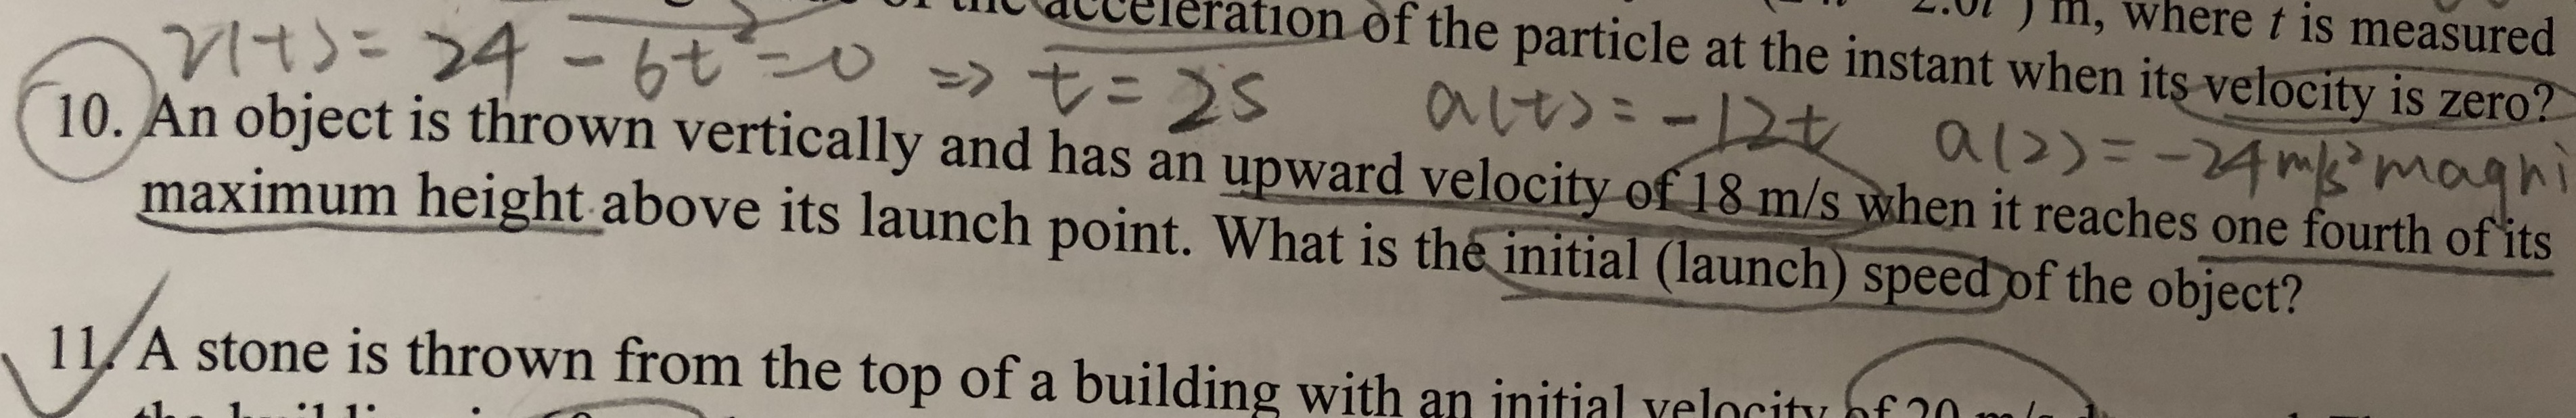 0l) m, where t is measured lt Qtbereration of the particle at the instant when its velocity is zero? 1O. An object is thrown vertically and has an upward velocity of 18 m/s ywhen it reaches one fourth ofits maximum height above its launch point. What is the initial (launch) speedof the object? 11/A stone is thrown from the top of a building with an initial yelociti nf 10 nitial velocity of